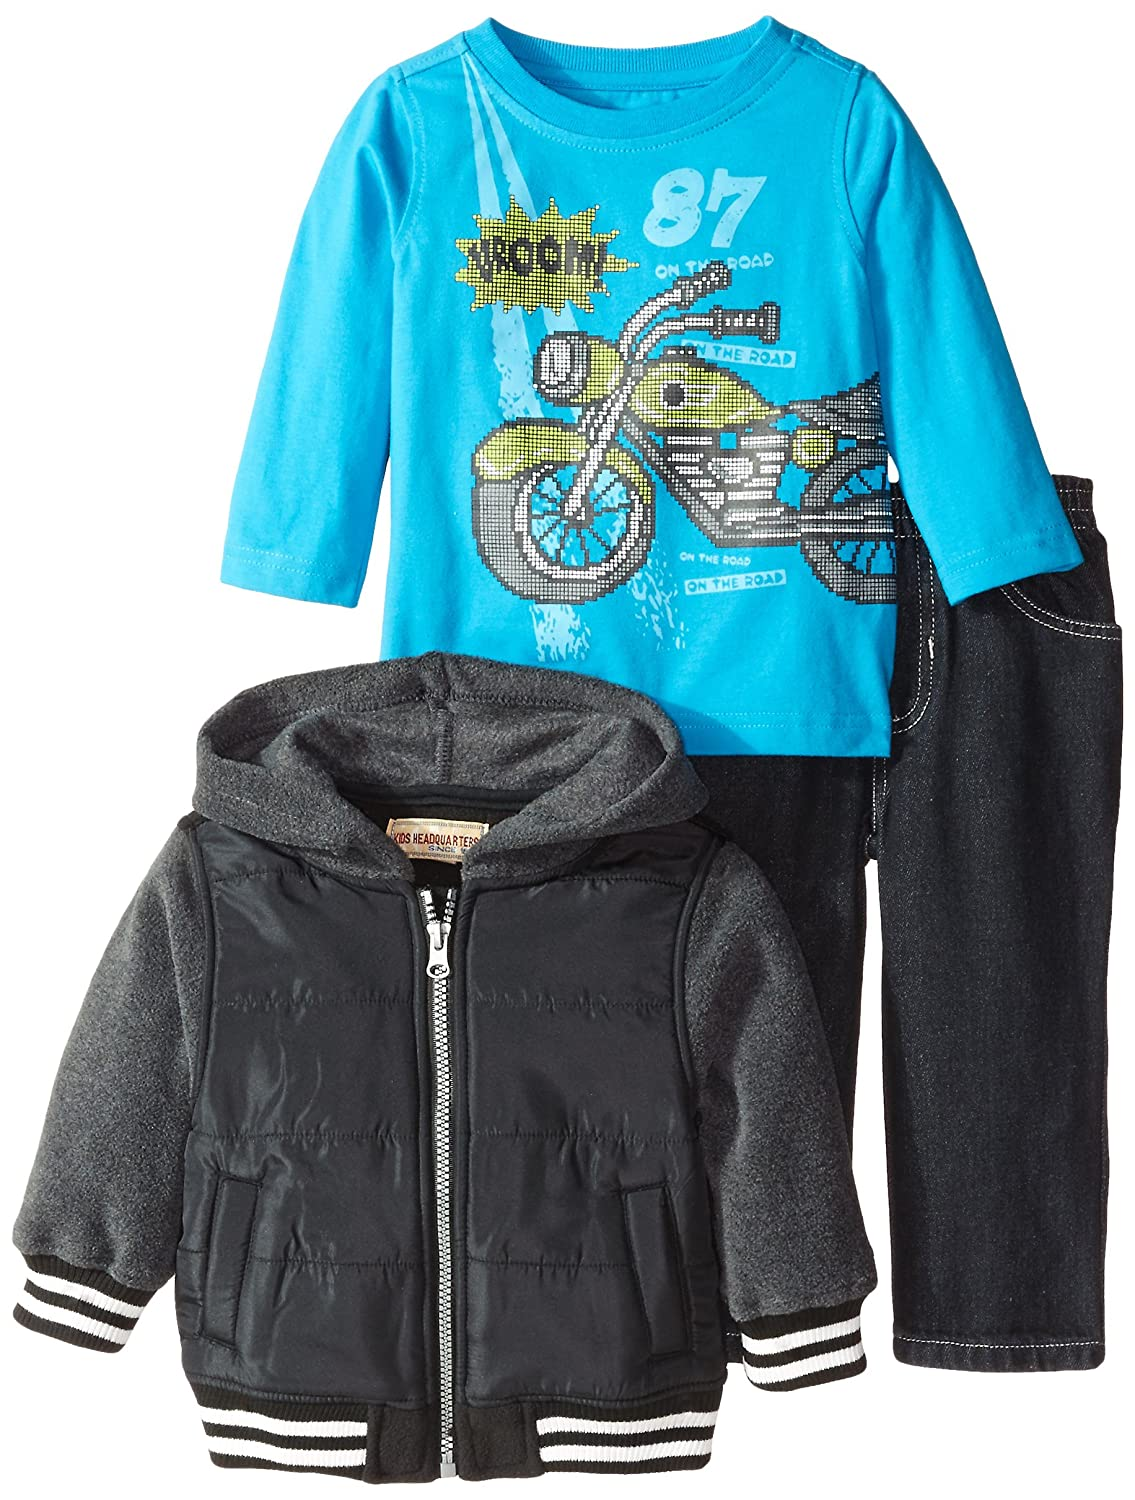 Kids Headquarters Baby Boys' Black Gray Fleece Jacket with Tee and Jeans